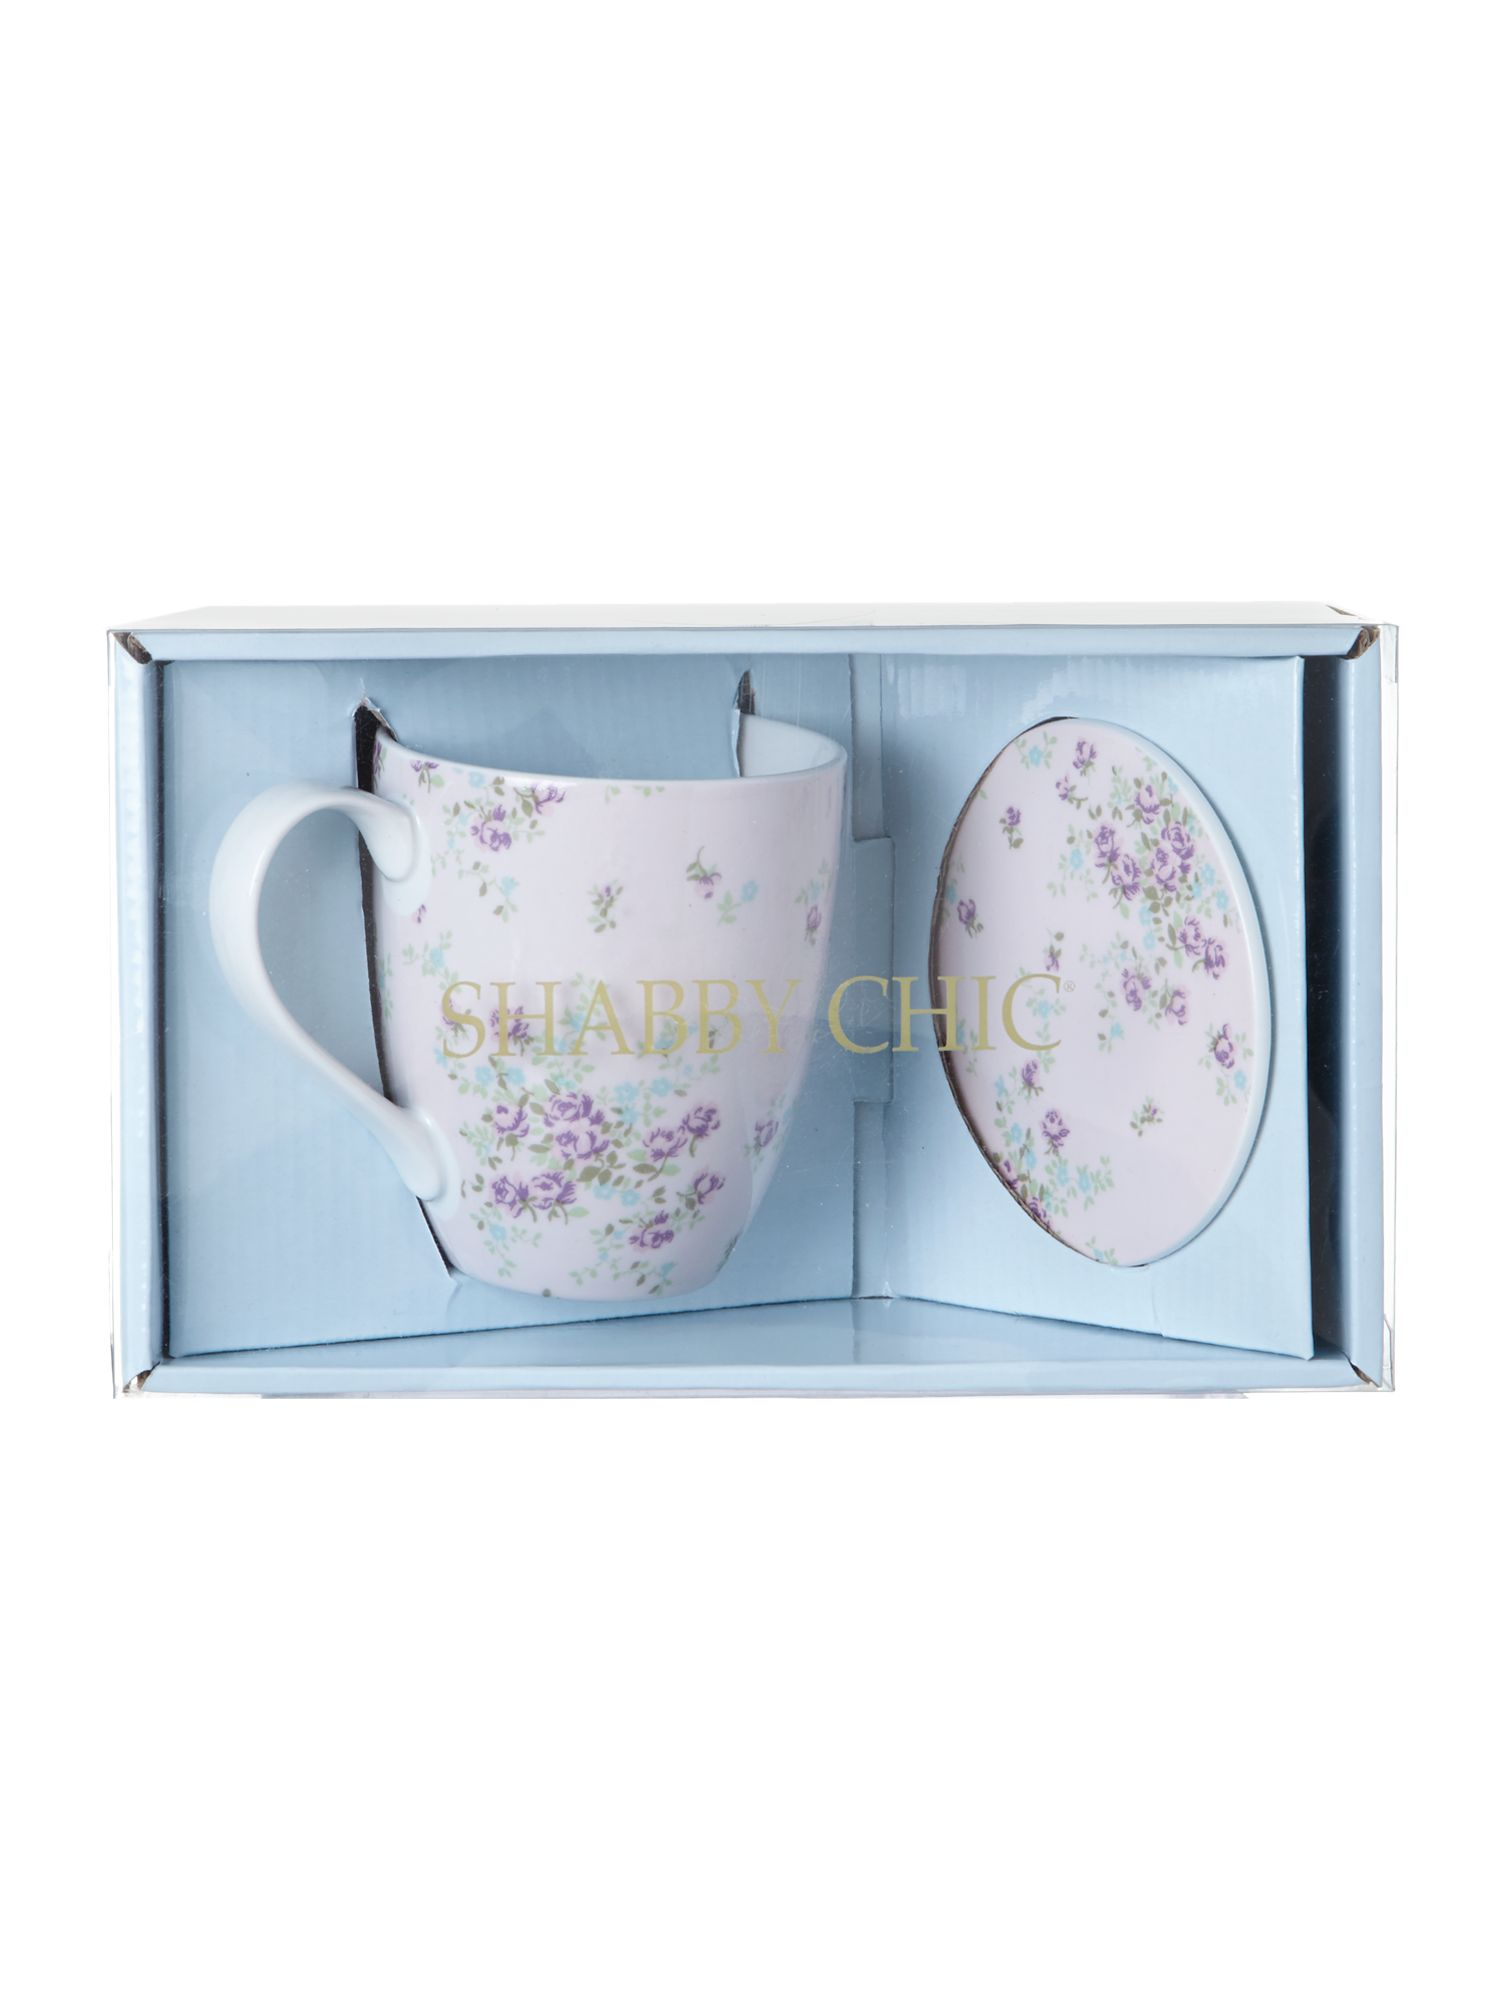 Mug and coaster gift set